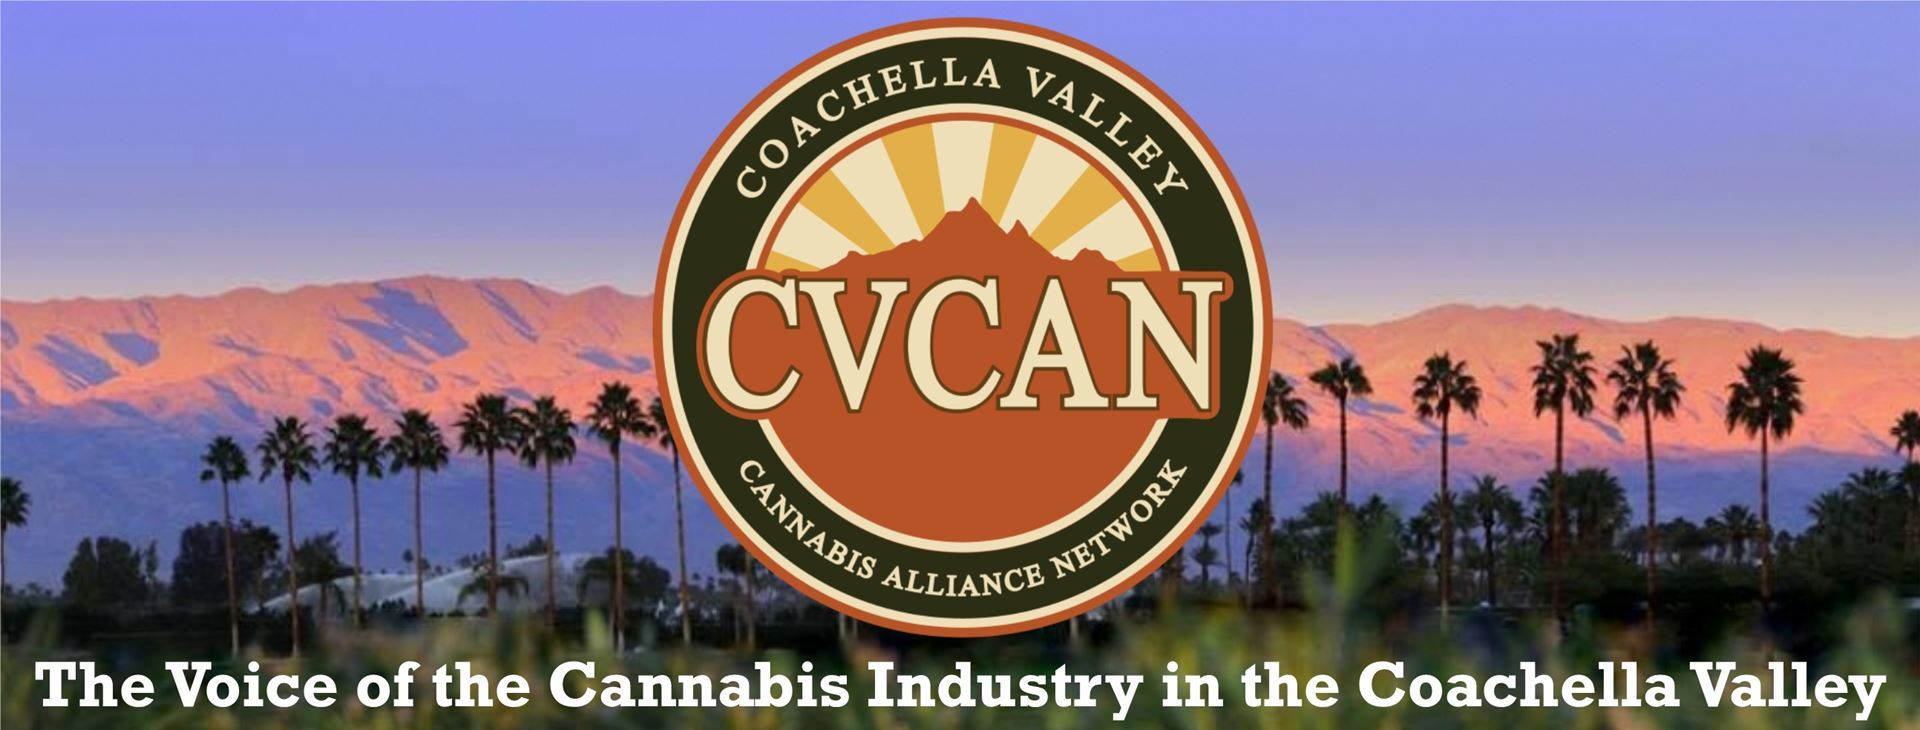 Cannabis Alliance Network